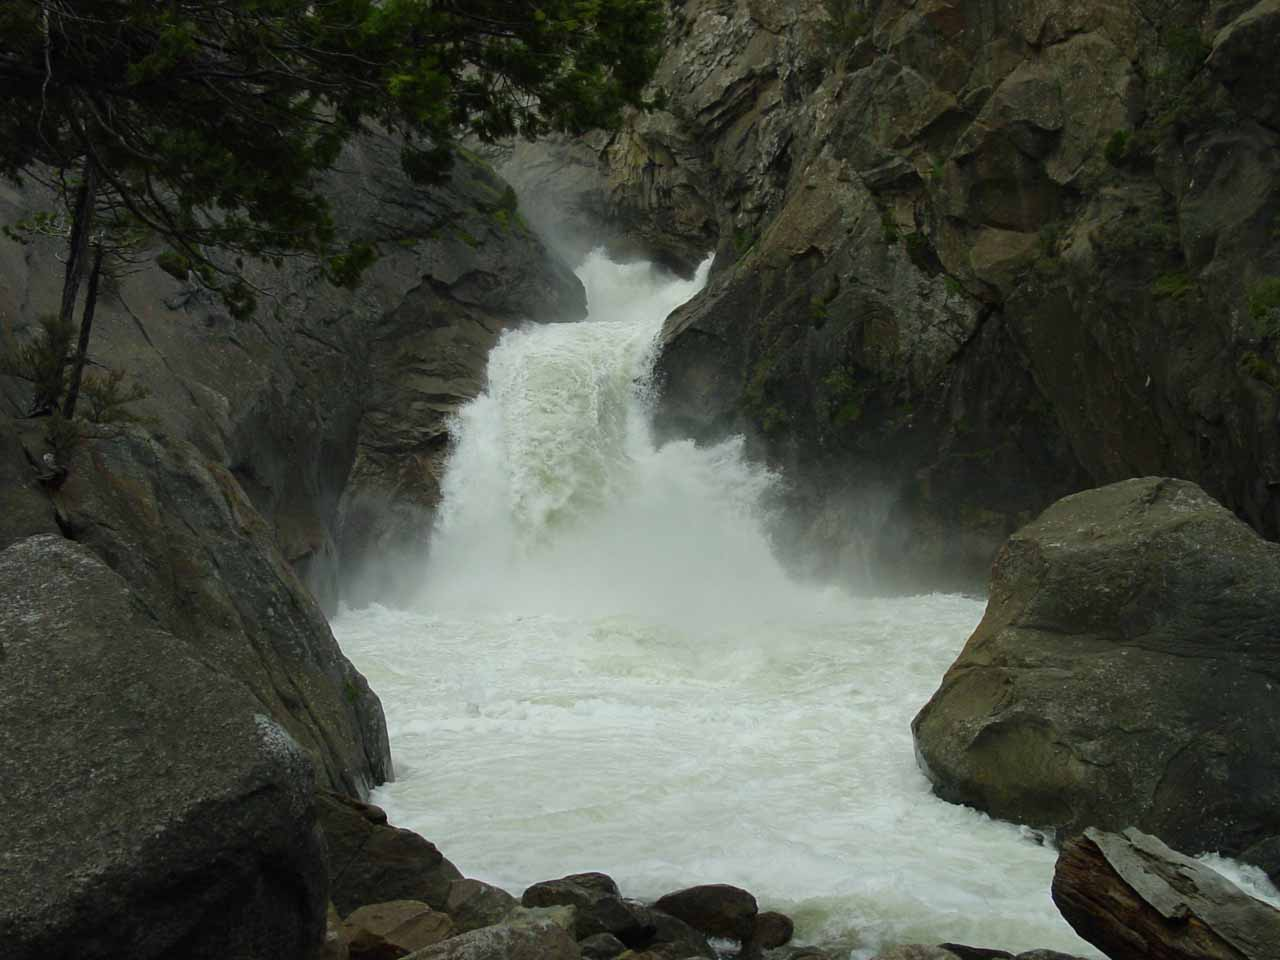 Roaring River Falls gushing in high flow